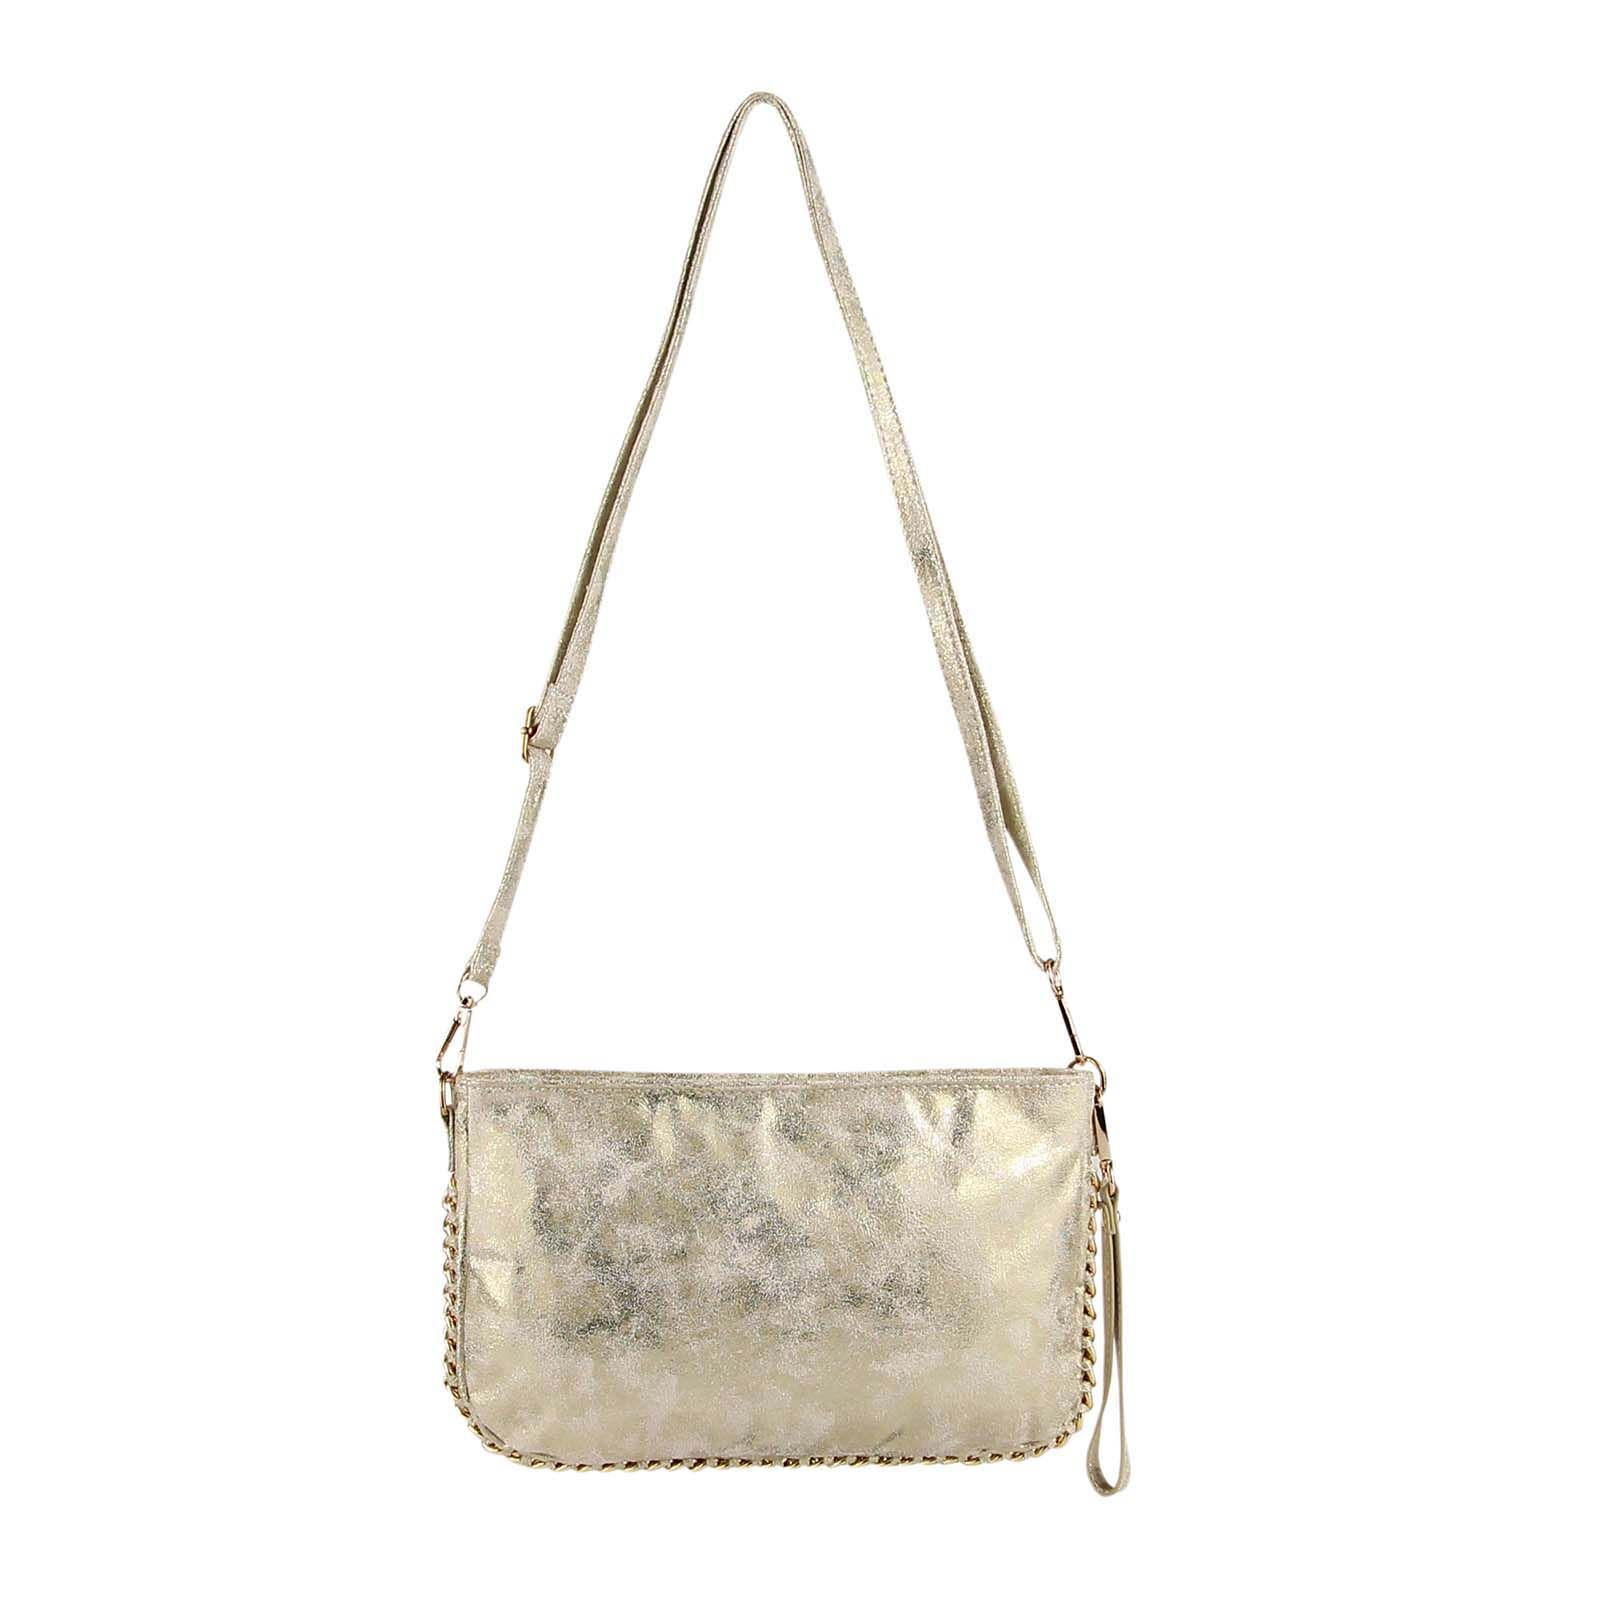 Photo of Femmes Clutch Sac Sac a bandouliere Sac à Bandoulière Crossover Trendy simili cuir  | eBay